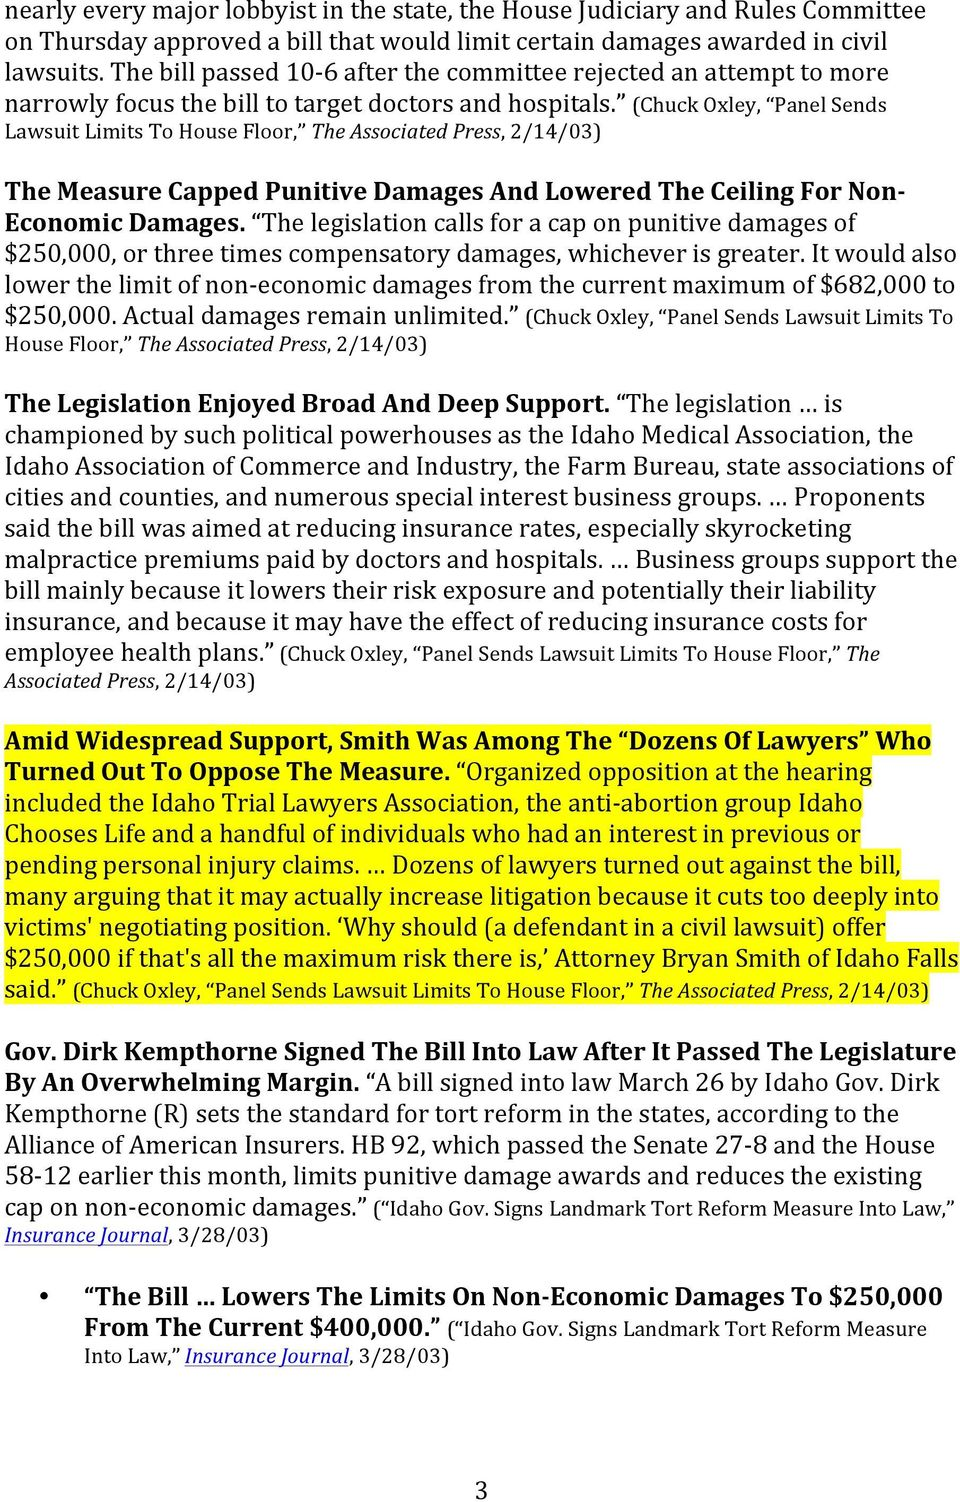 (Chuck Oxley, Panel Sends Lawsuit Limits To House Floor, The Associated Press, 2/14/03) The Measure Capped Punitive Damages And Lowered The Ceiling For Non- Economic Damages.